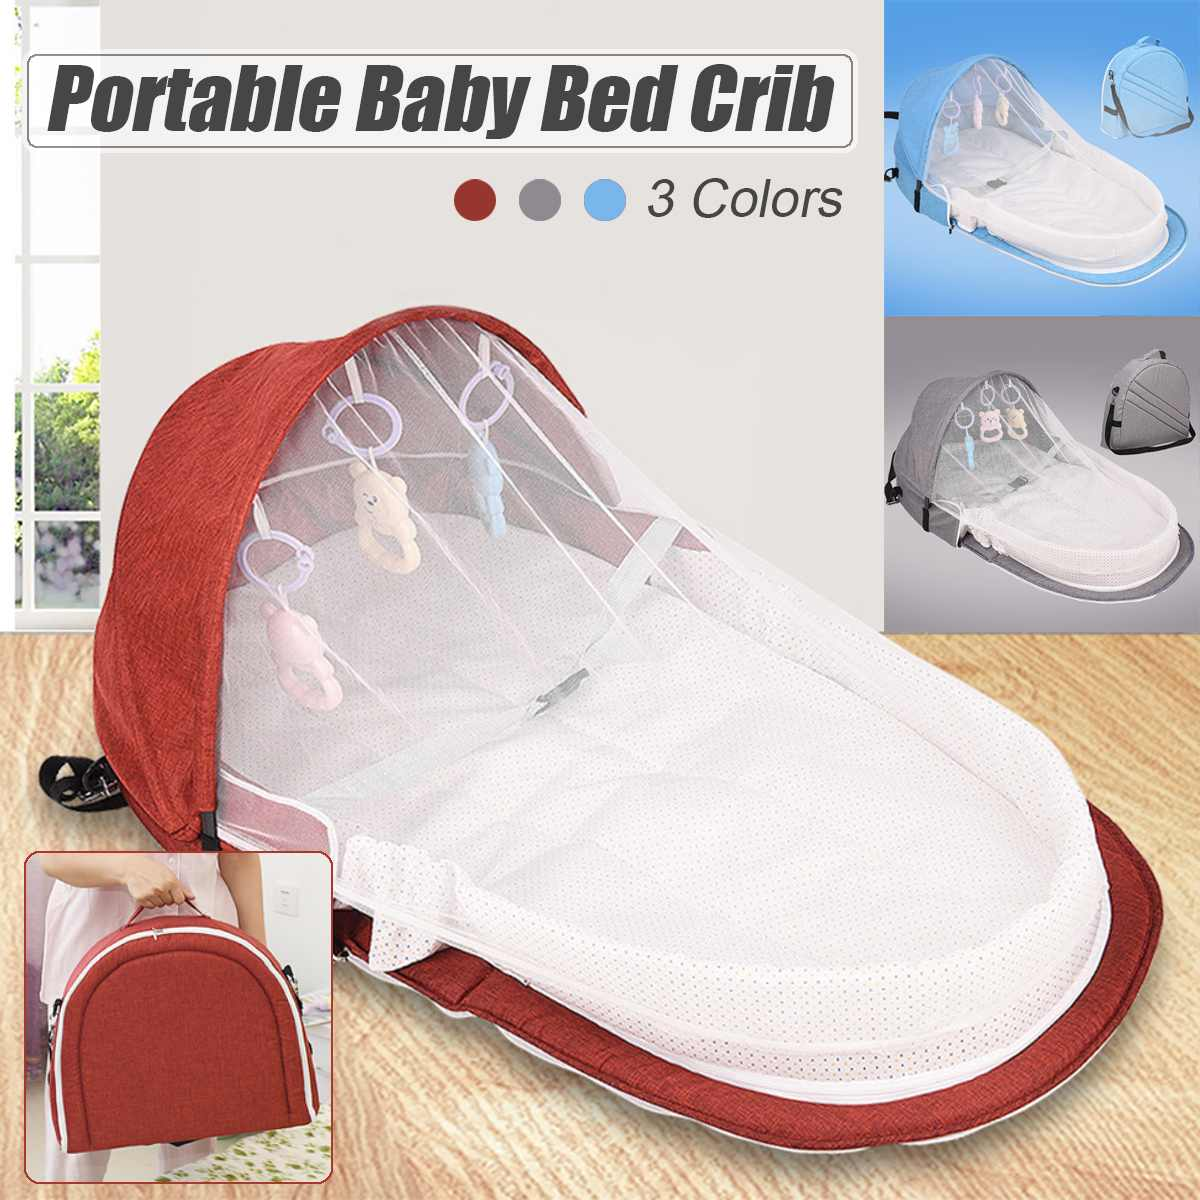 Mummy-Bag Crib Diaper-Change-Bed Mosquito-Cover Multi-Function Travelling Foldable Baby